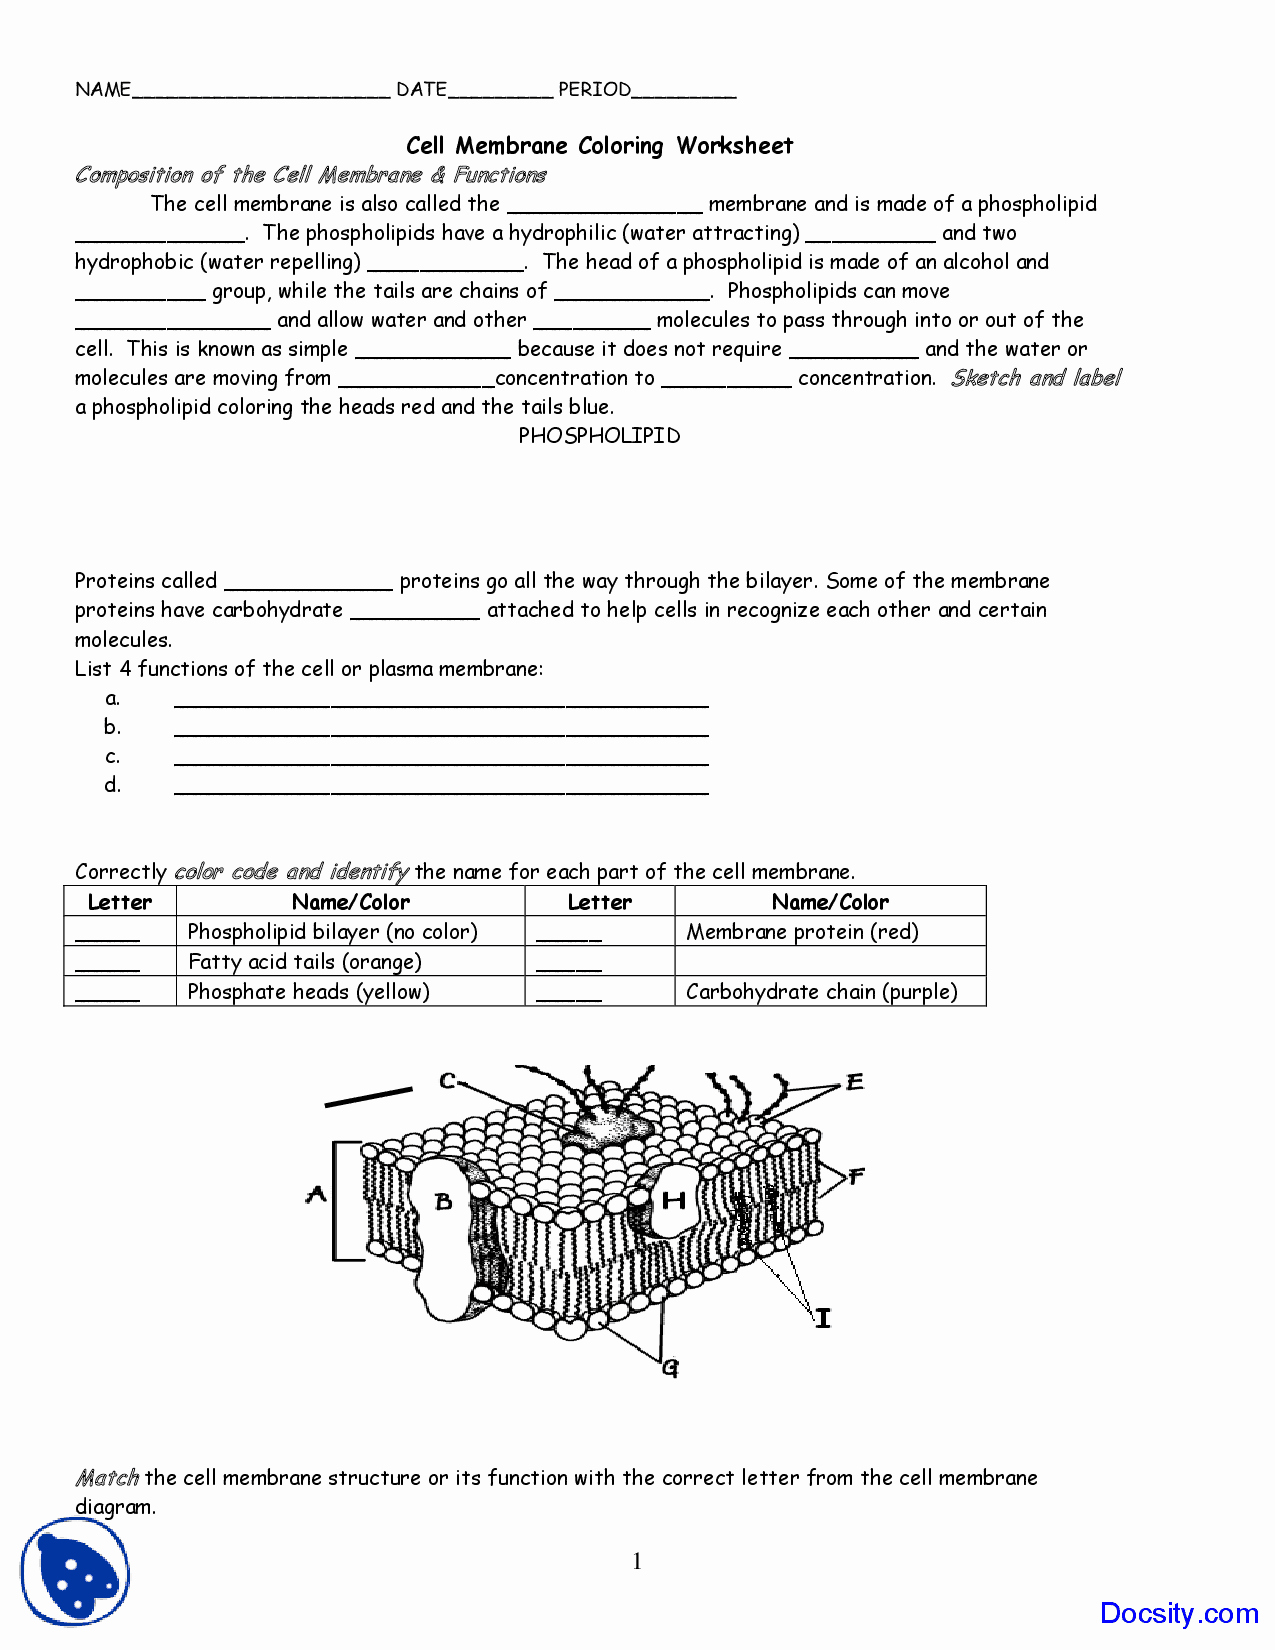 Membrane Structure and Function Worksheet Luxury Cell Membrane Coloring Application Of Biology